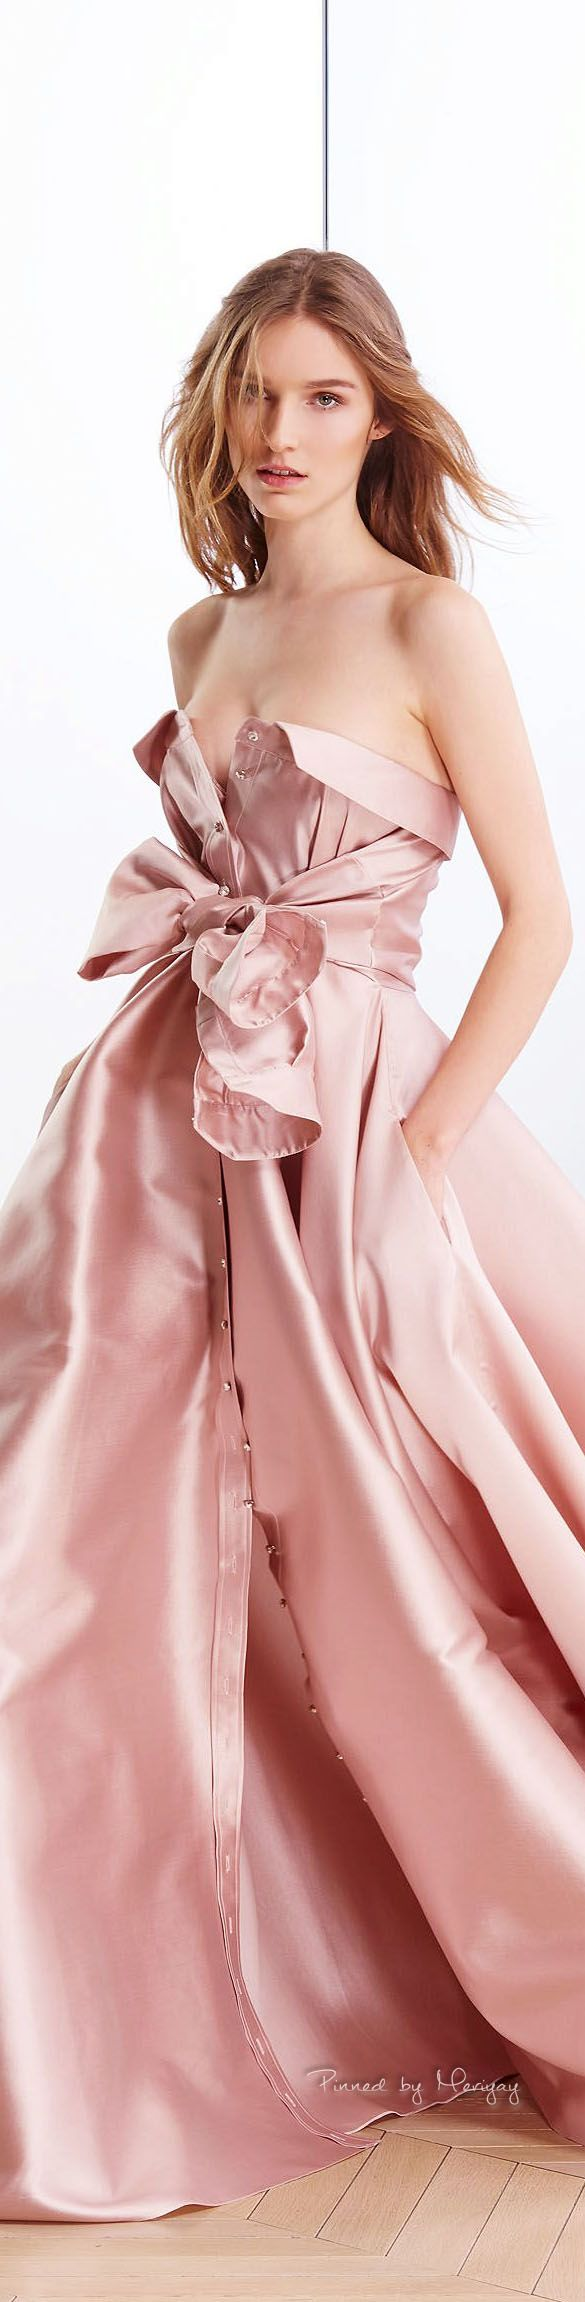 525 best Powder Pink images on Pinterest | Evening gowns, Blouses ...